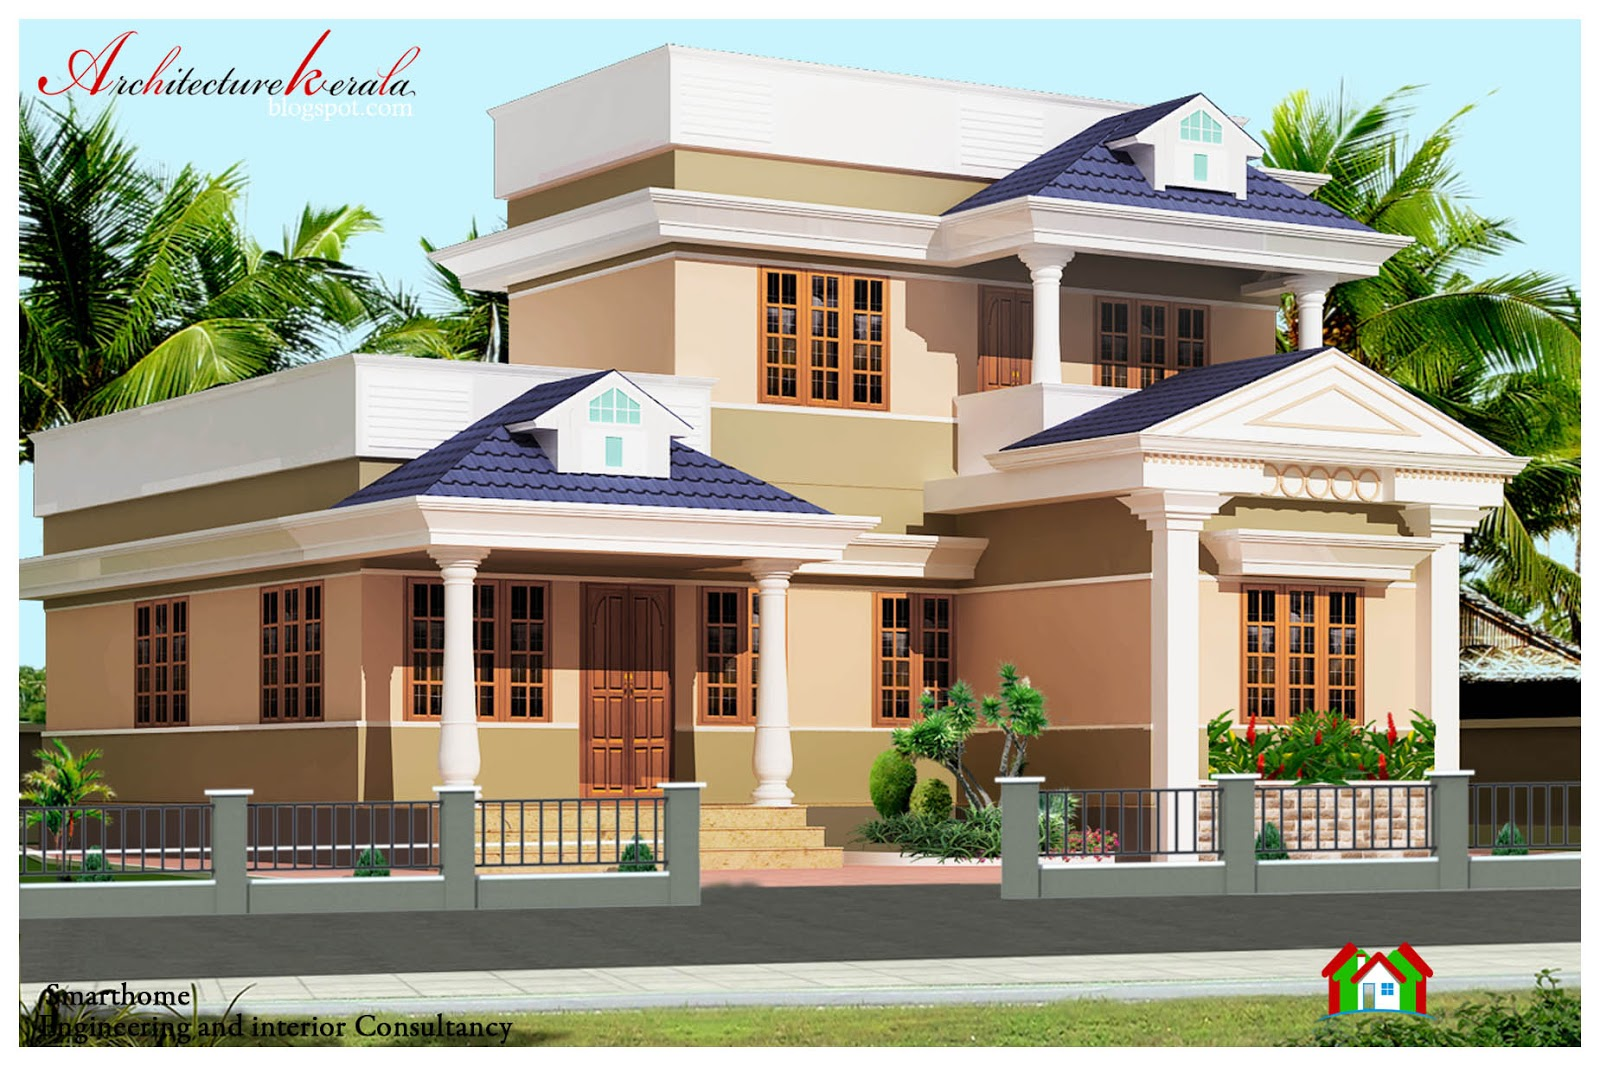 1000 sq ft kerala style house plan architecture kerala 3 bedroom kerala house plans